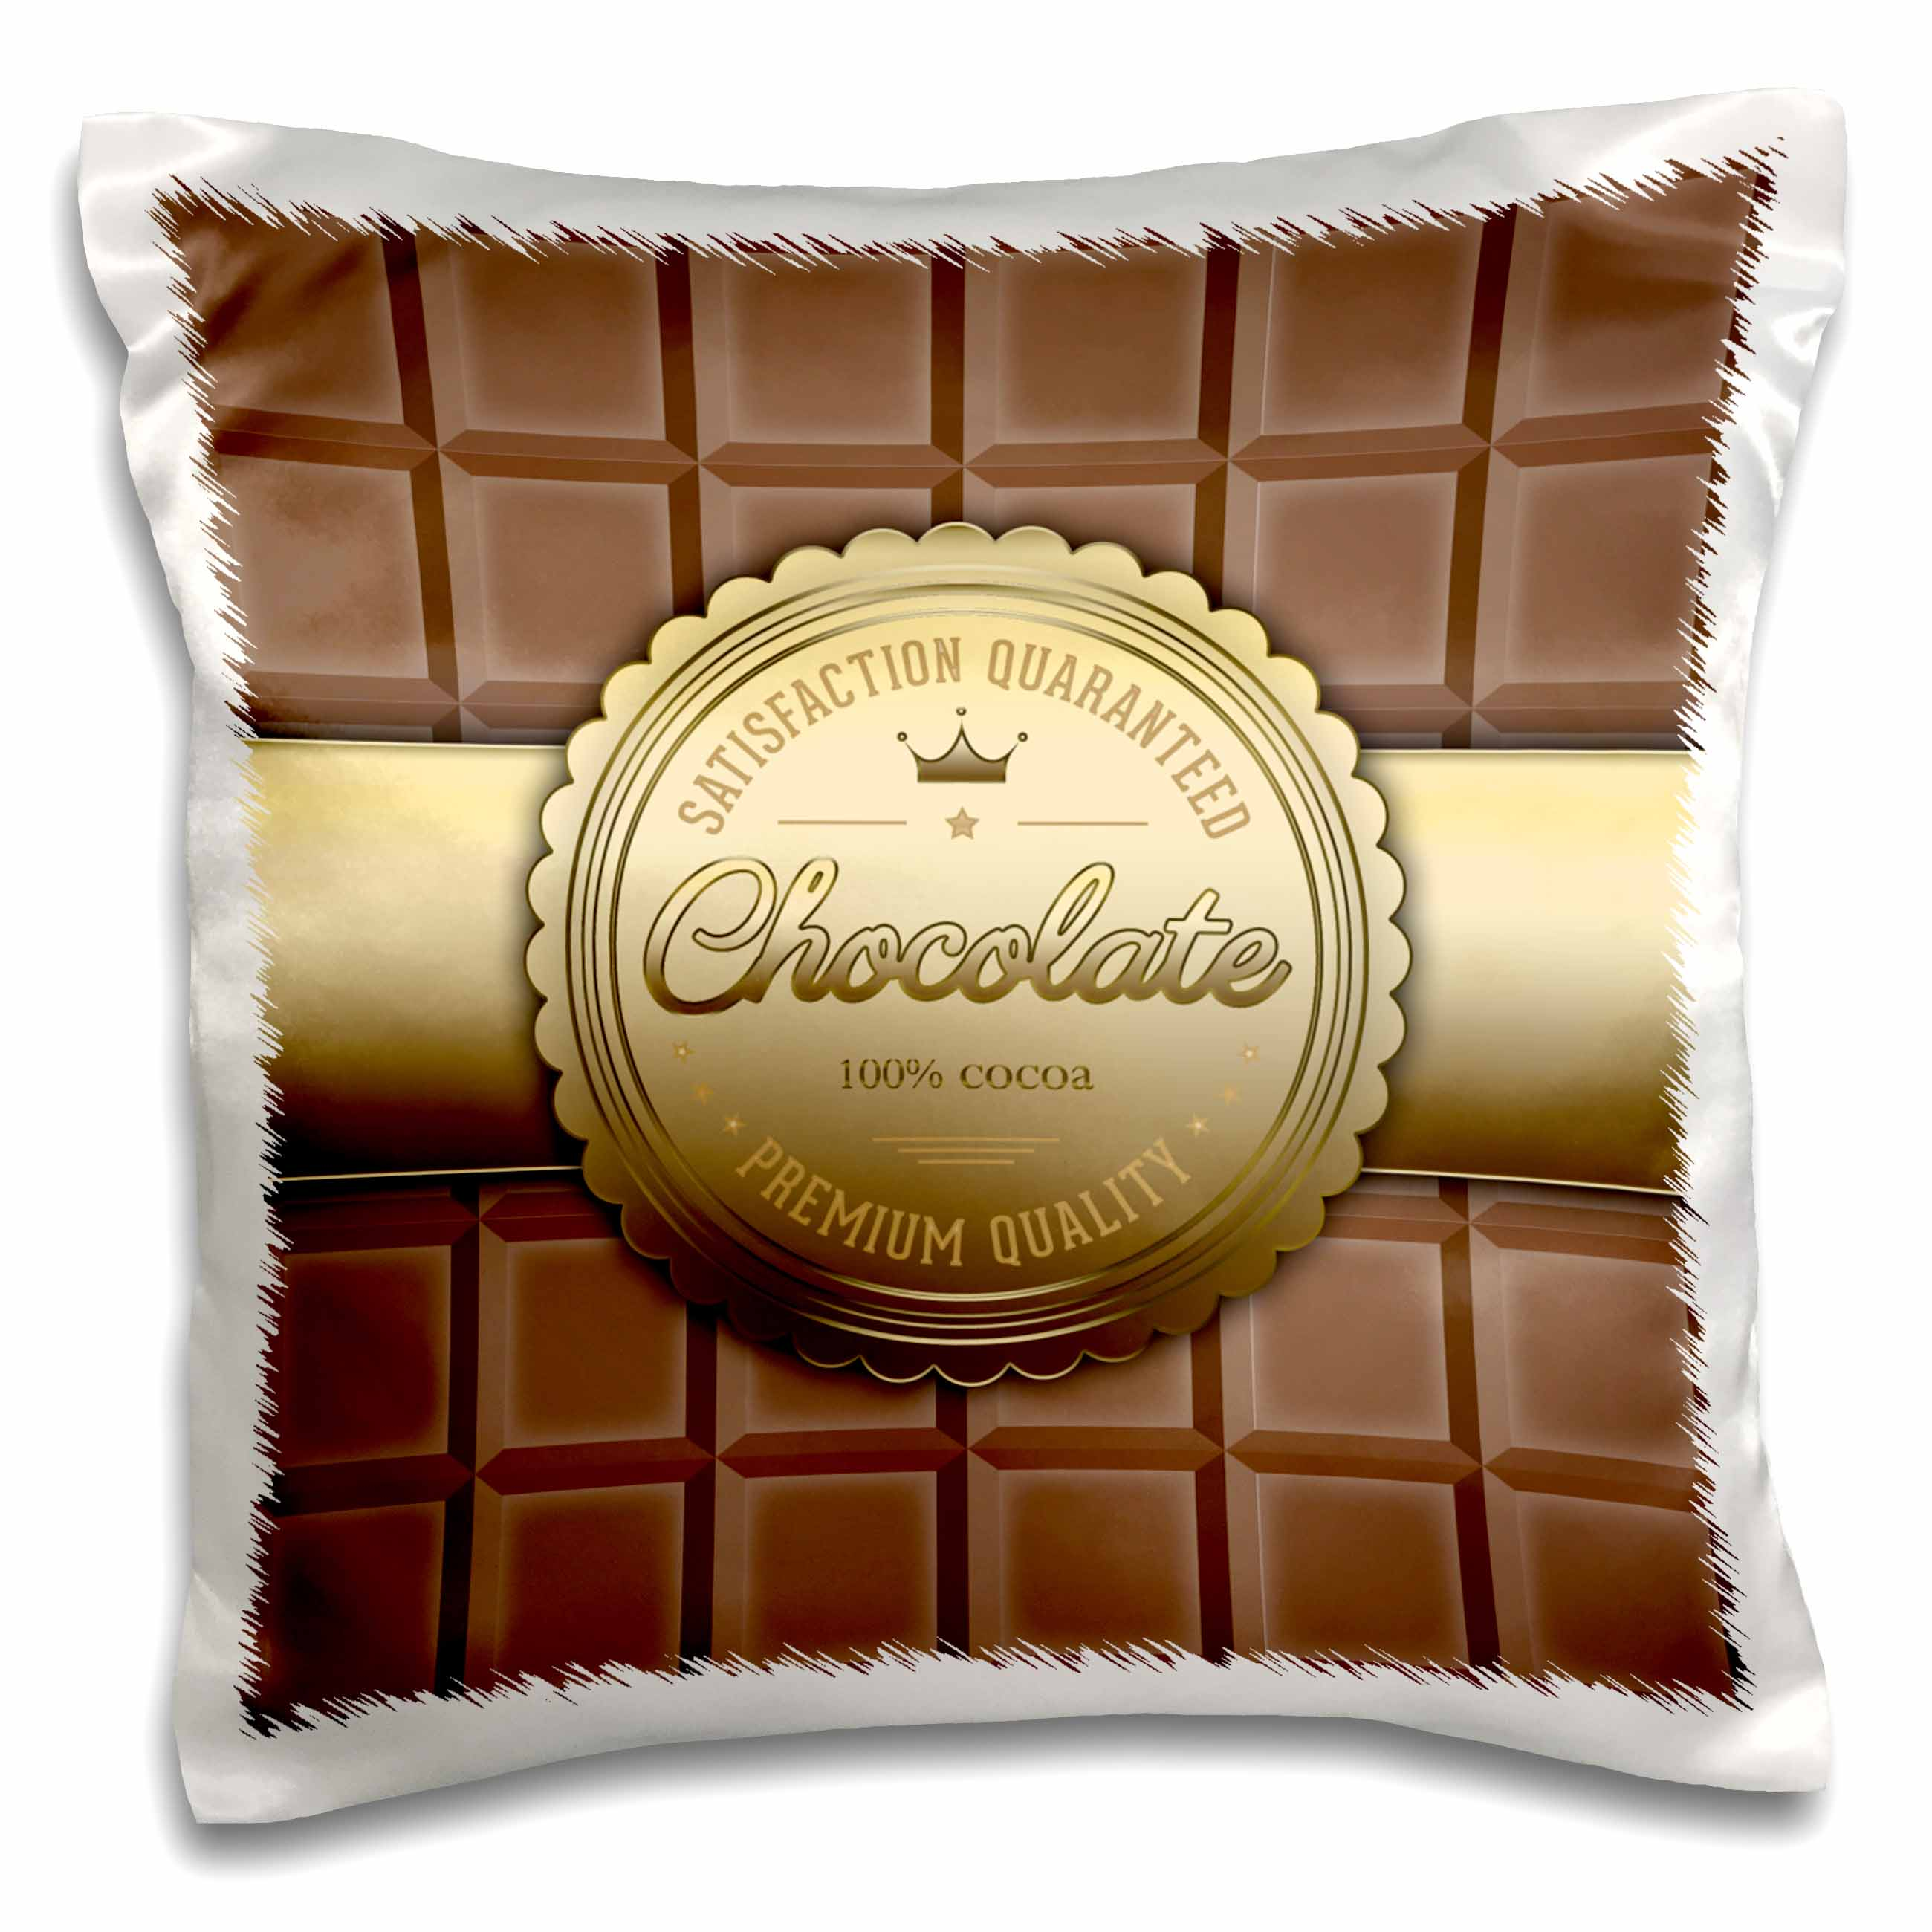 3dRose A Chocolate Bar with a Golden Seal, Pillow Case, 16 by 16-inch